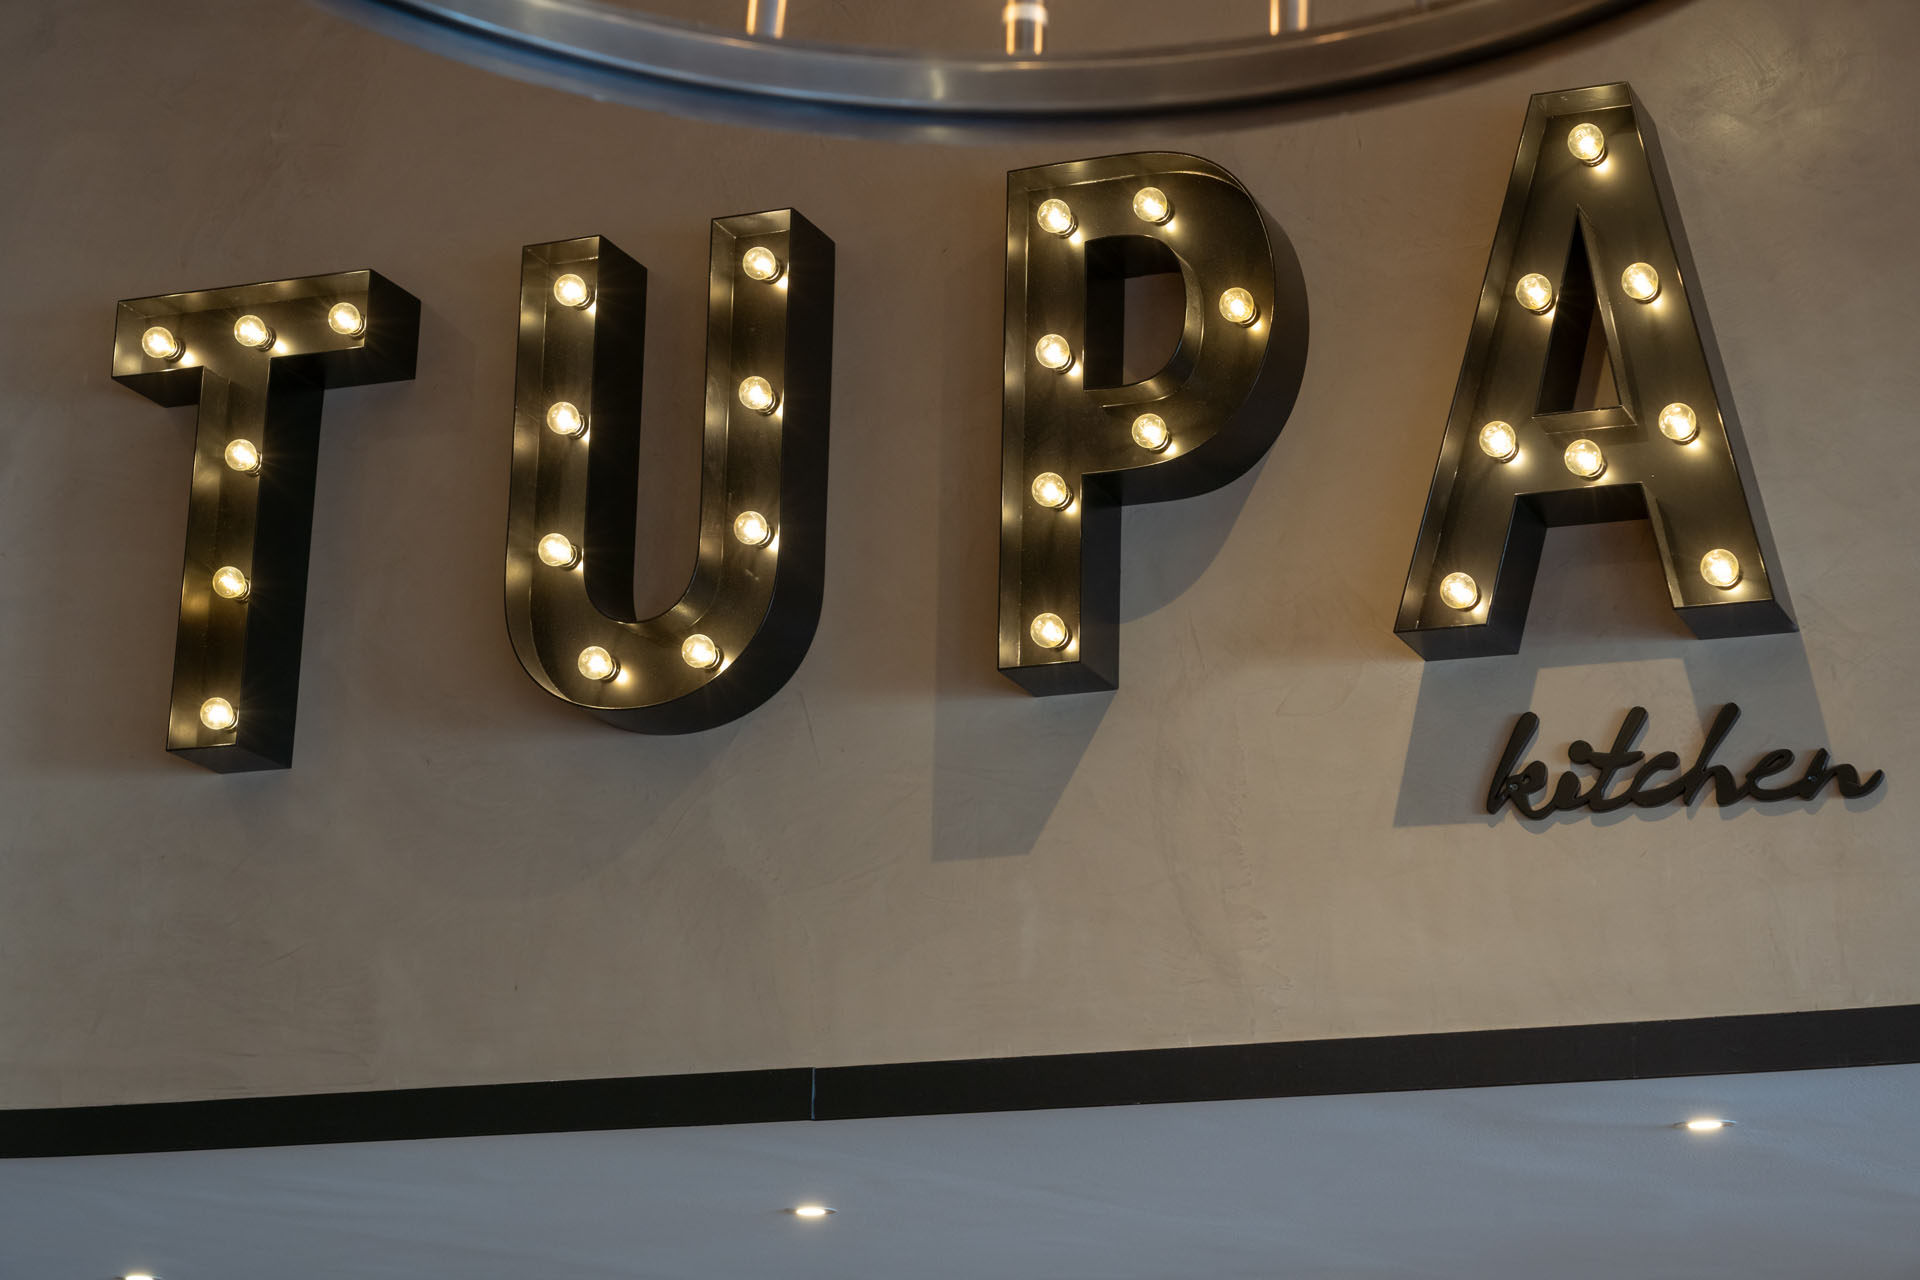 Tupa kitchen & bar